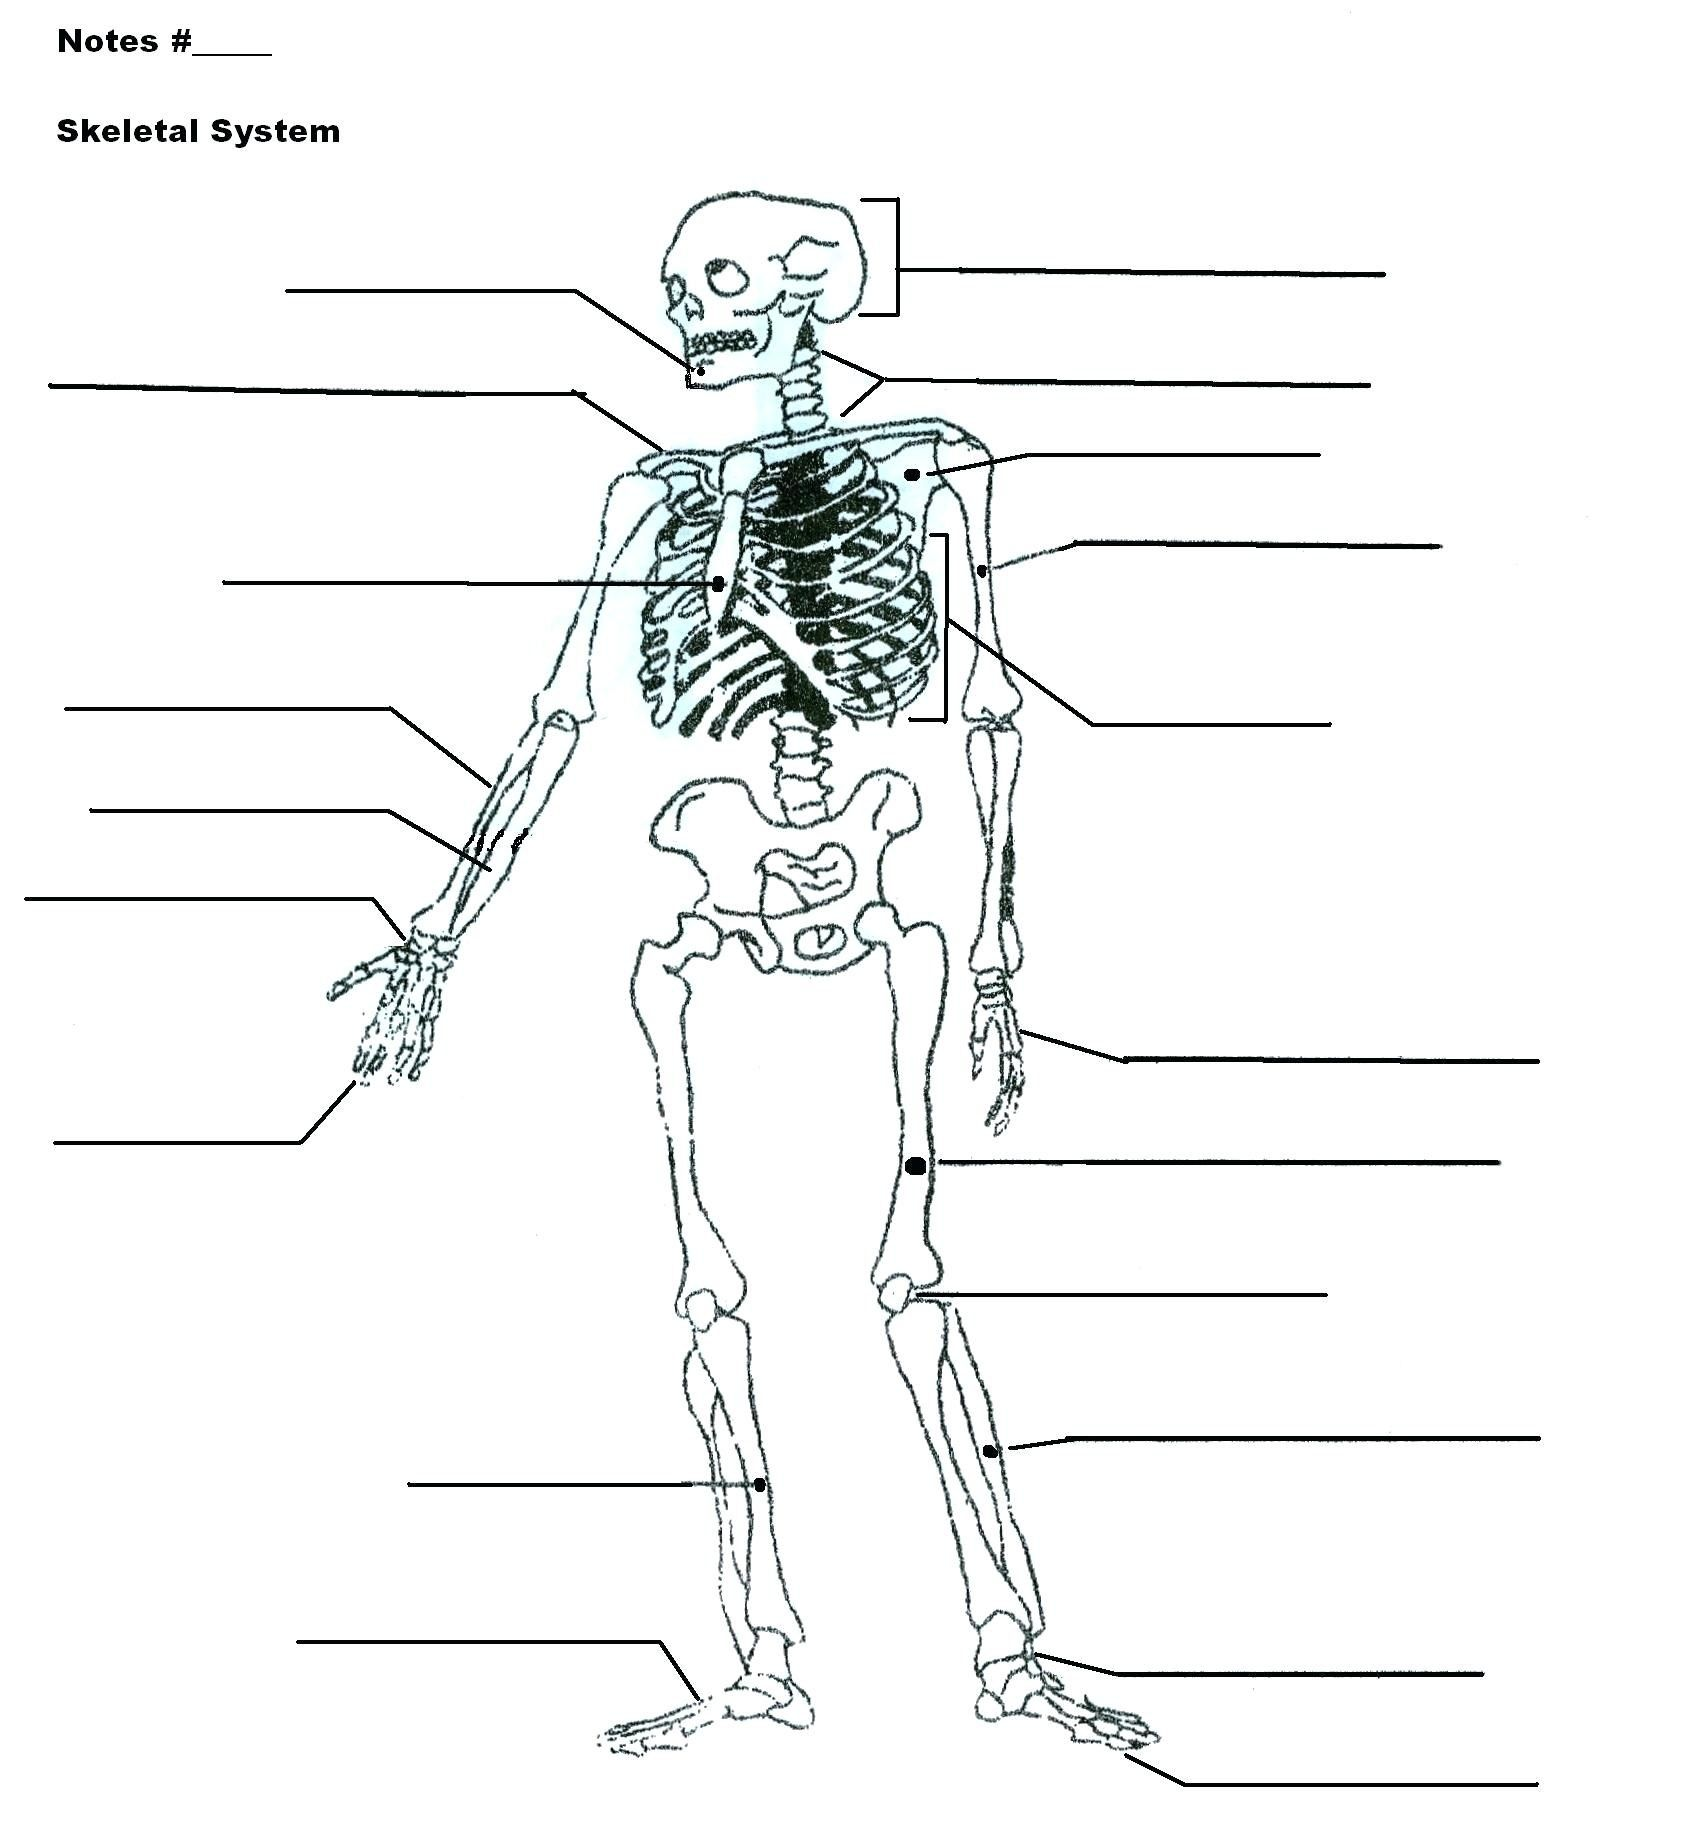 Human Skeleton Diagram Without Labels Human Skeleton